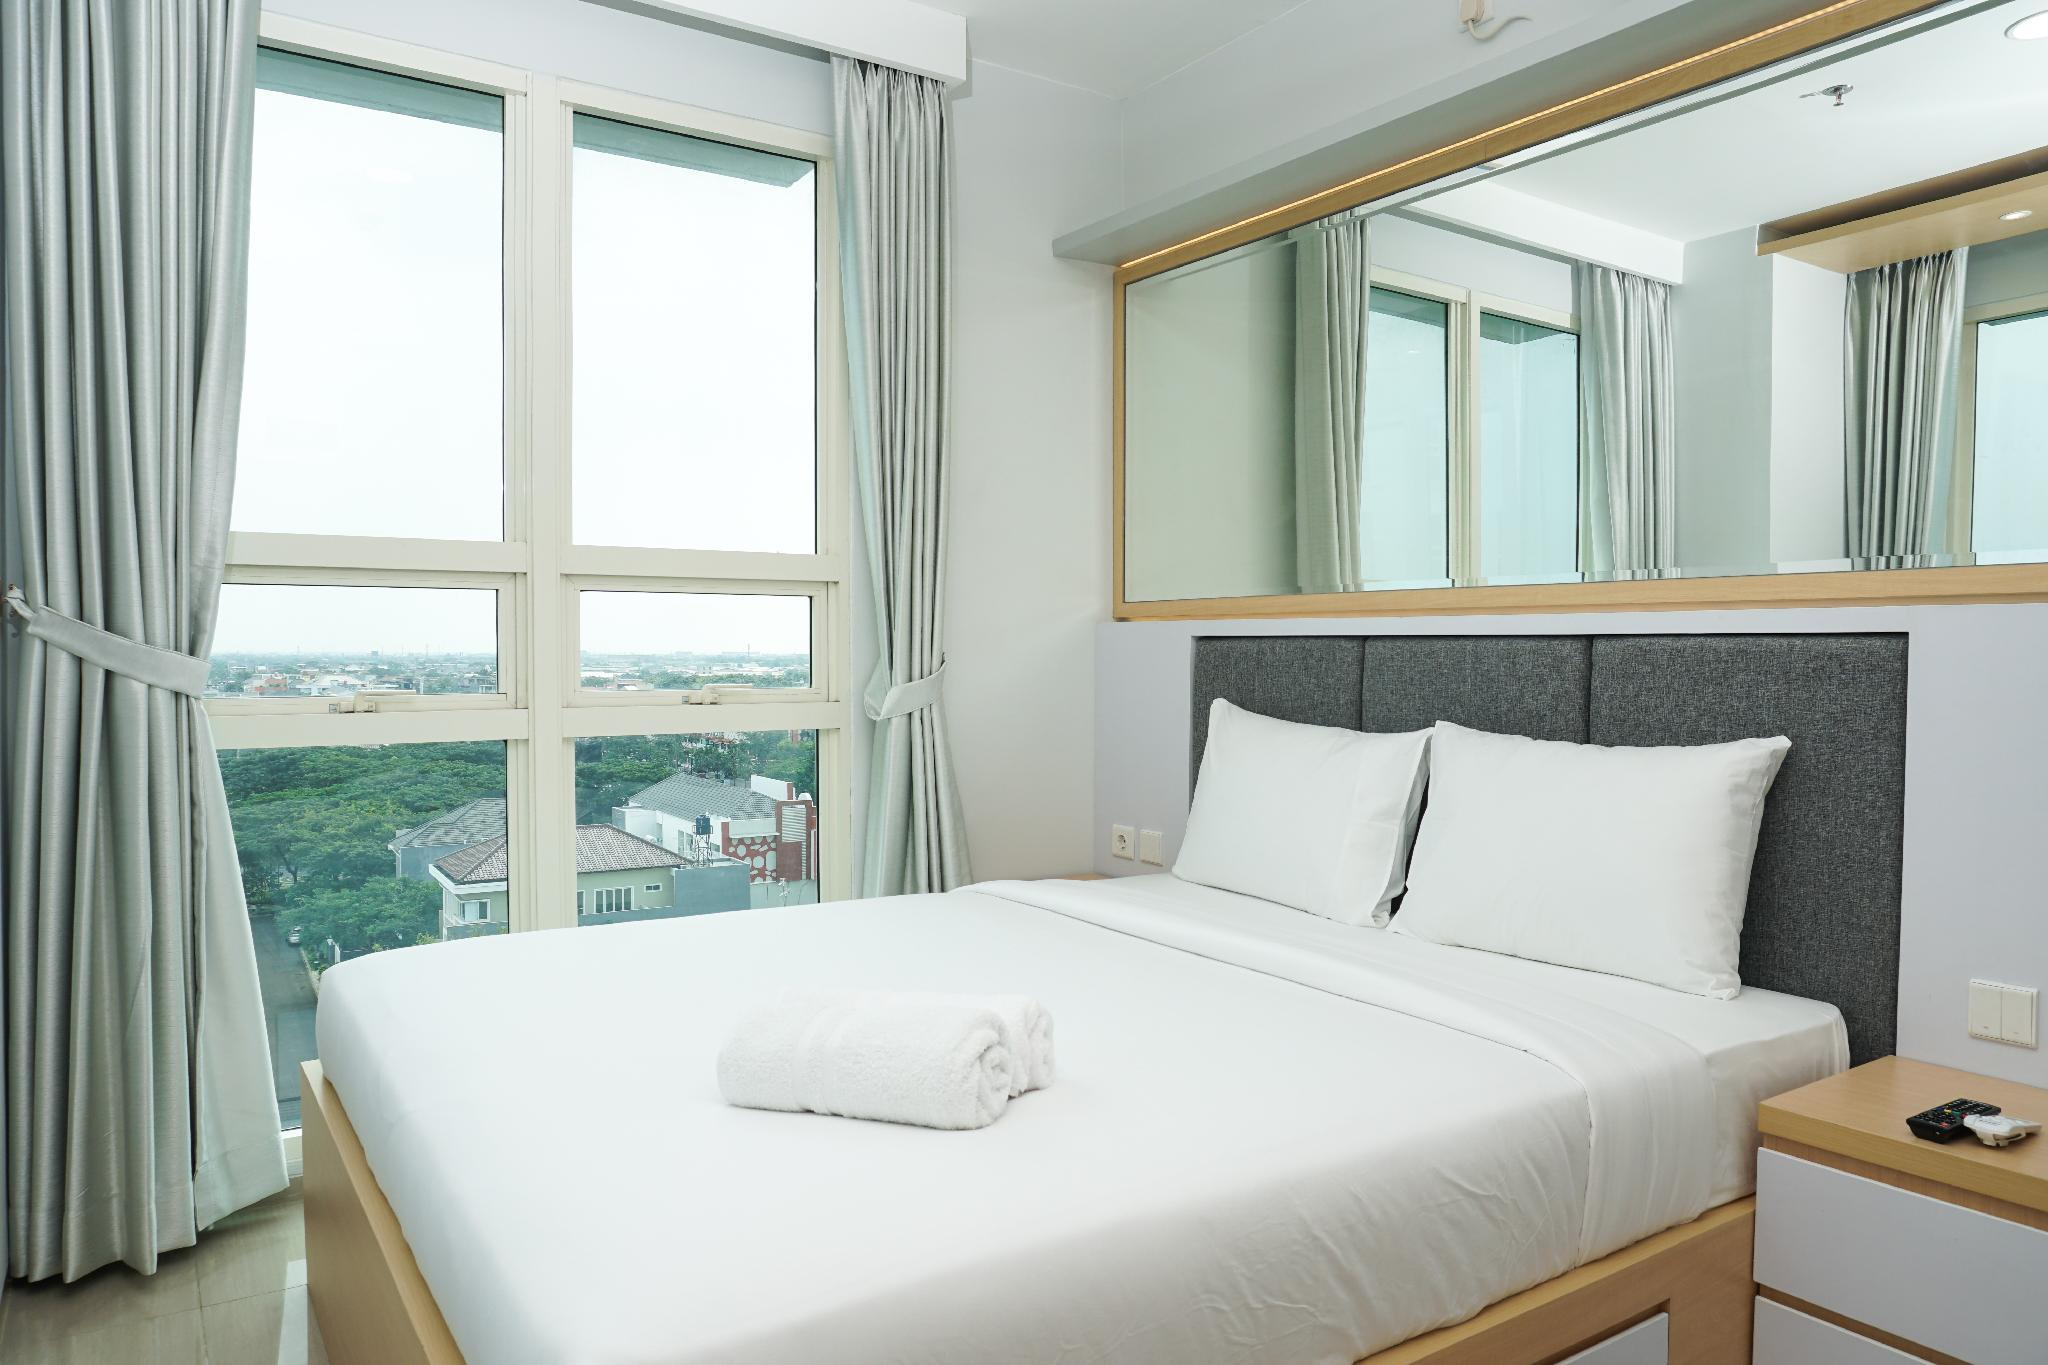 Modern 2BR Apt At Citra Lake Suites By Travelio